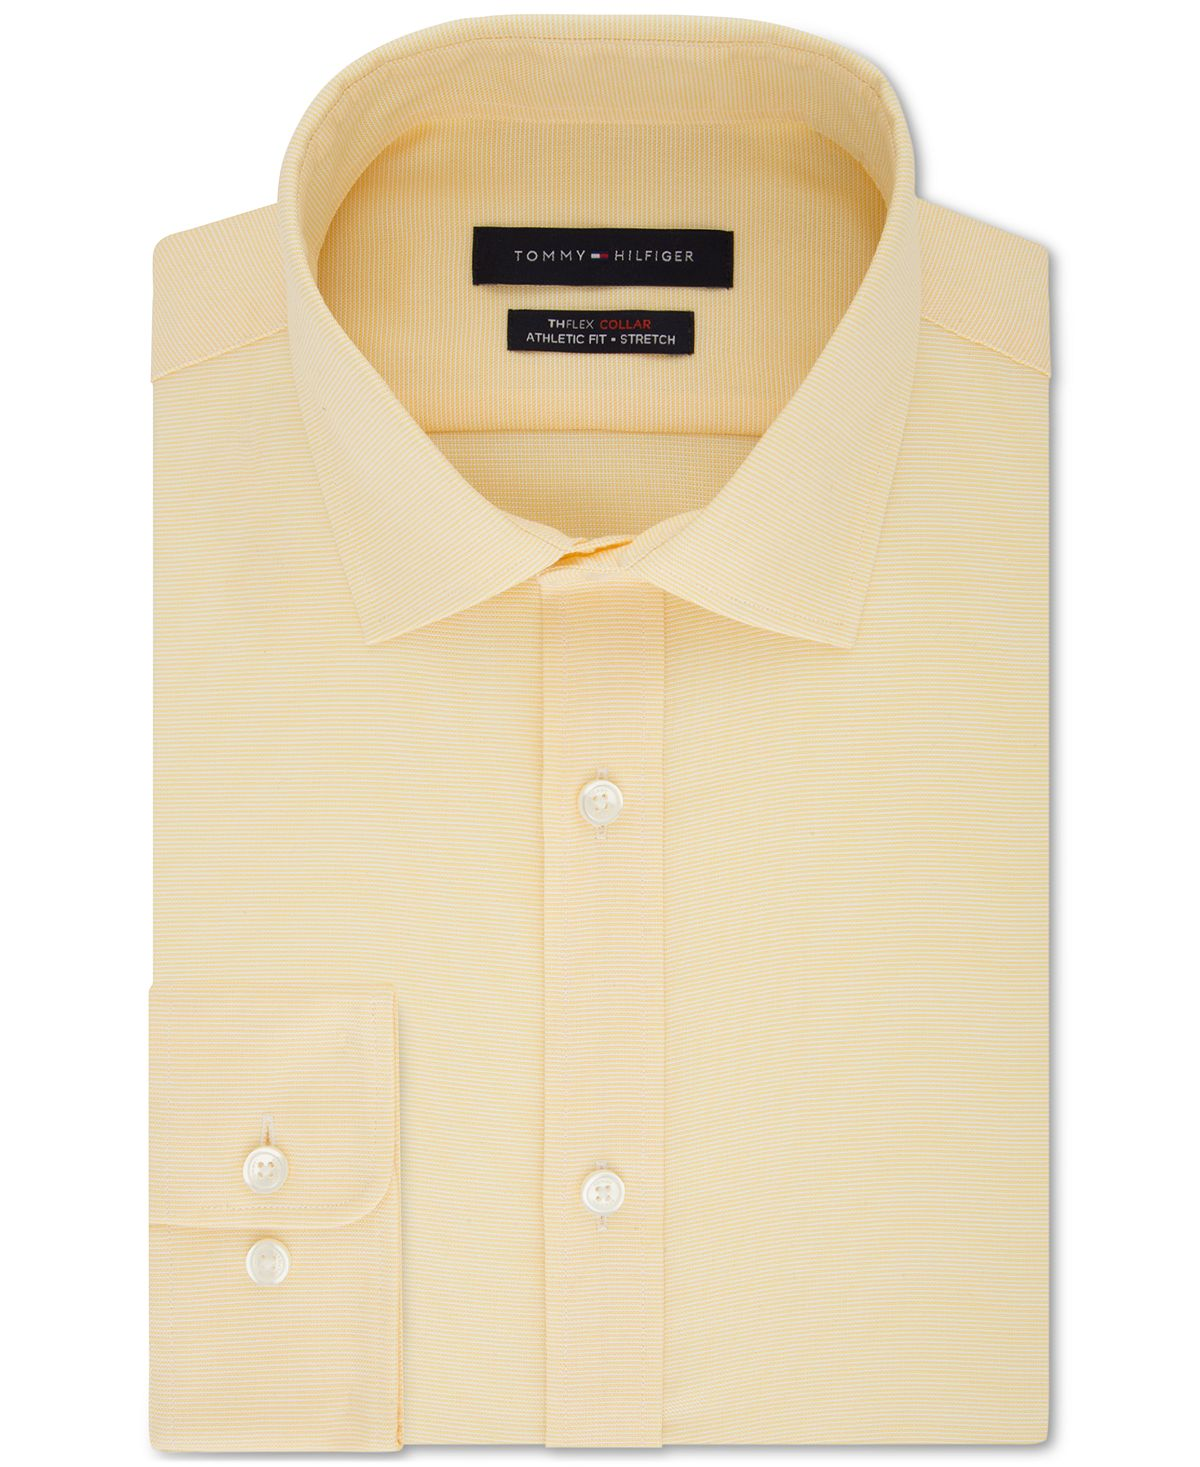 Tommy Hilfiger Th Flex Athletic Fit Non-iron Stretch Tonal Micro-stripe Dress Shirt Marigold